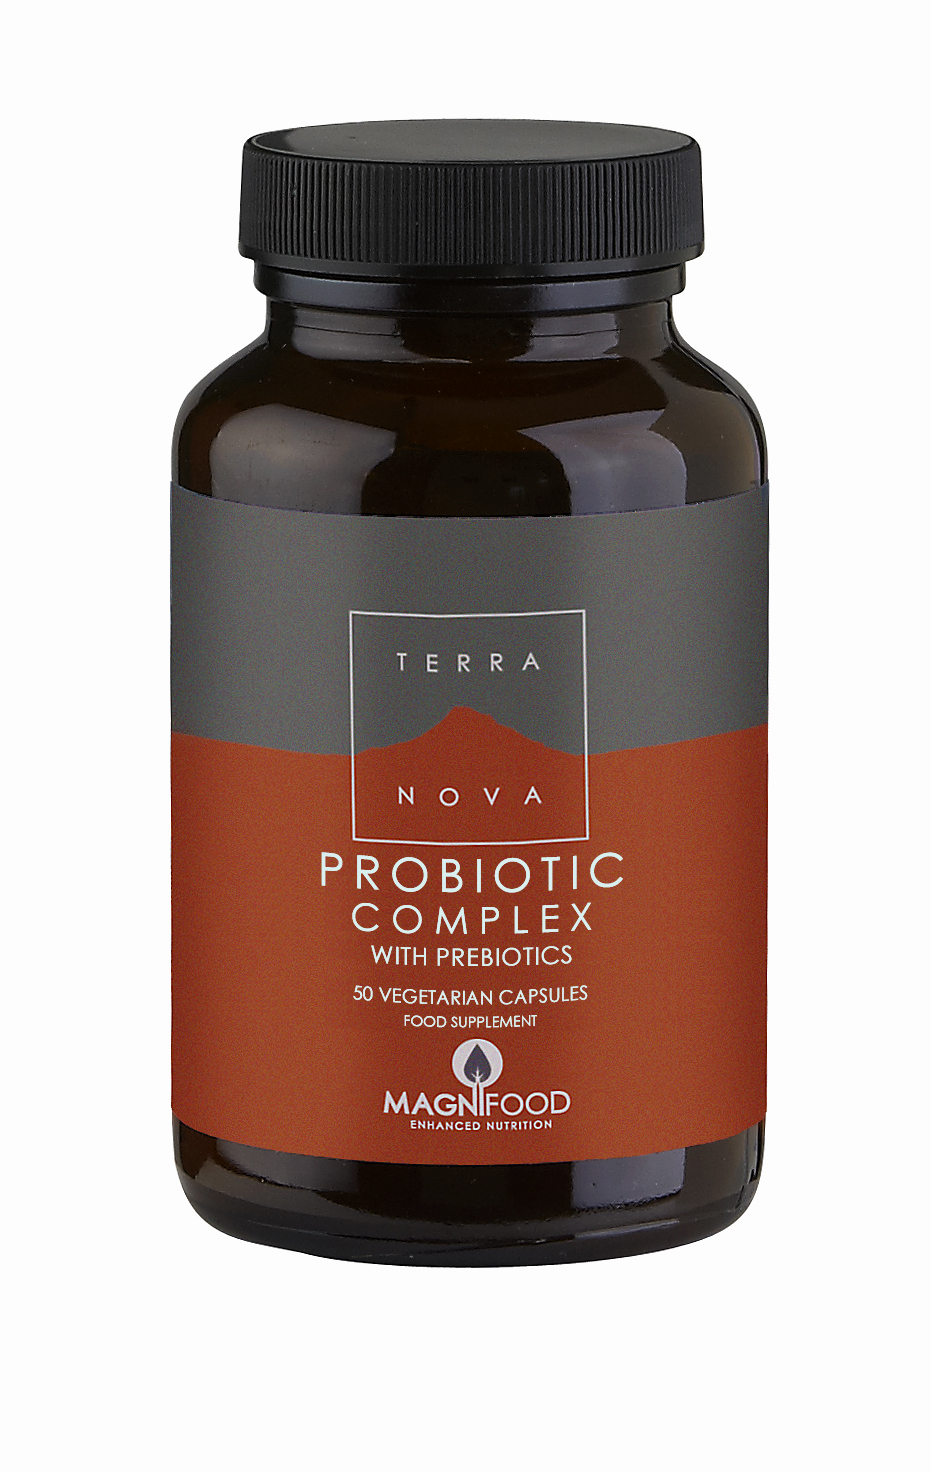 new - PROBIOTIC COMPLEX WITH PREBIOTICS 50.jpg